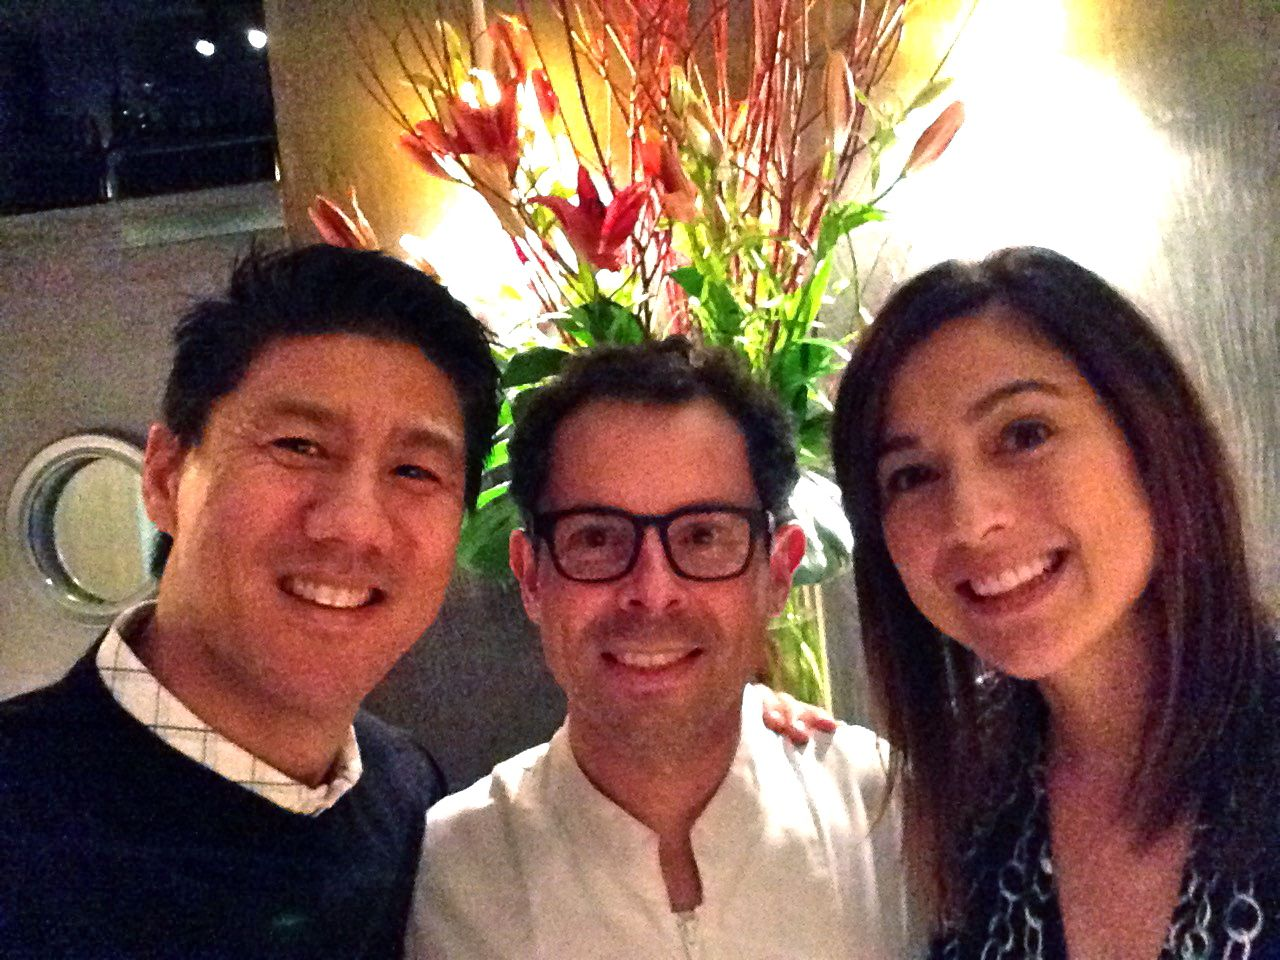 3 star Michelin megachef, Pascal Barbot from L'Astrance, with David and Patricia Chao